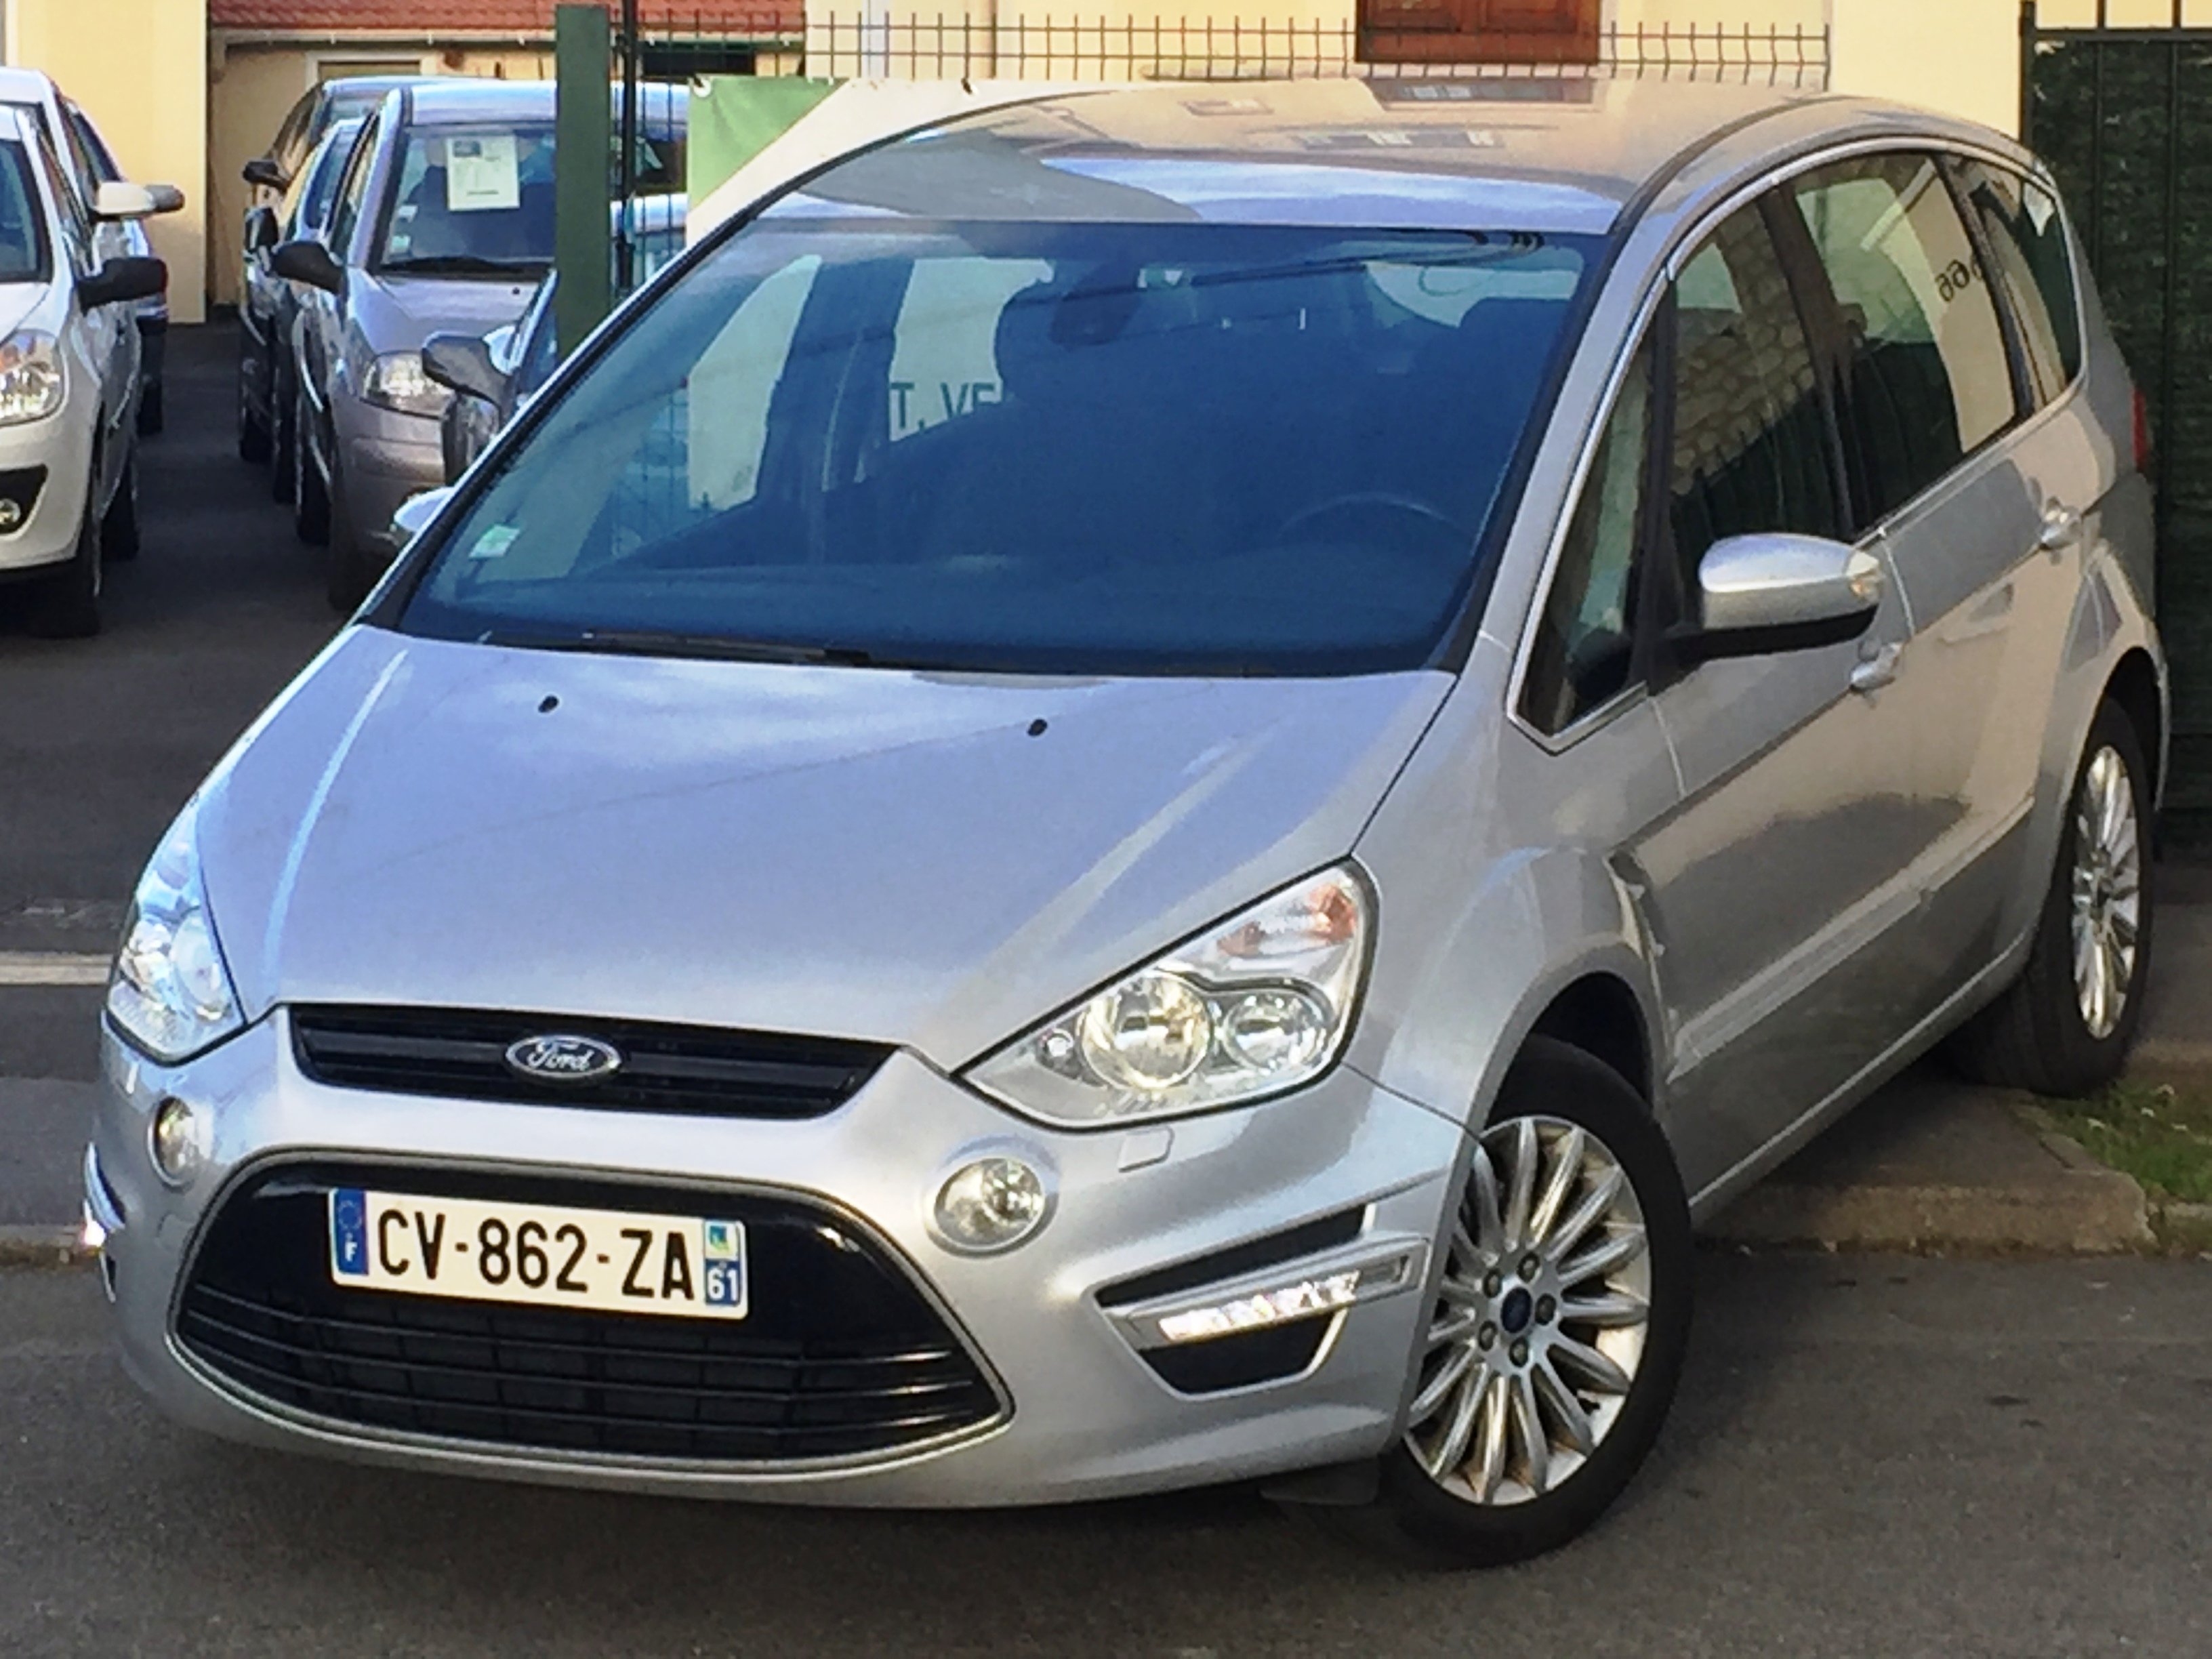 voiture ford s max 2 0 tdci 163 fap sport platinium 5 pl powershift a occasion 2013 107854. Black Bedroom Furniture Sets. Home Design Ideas